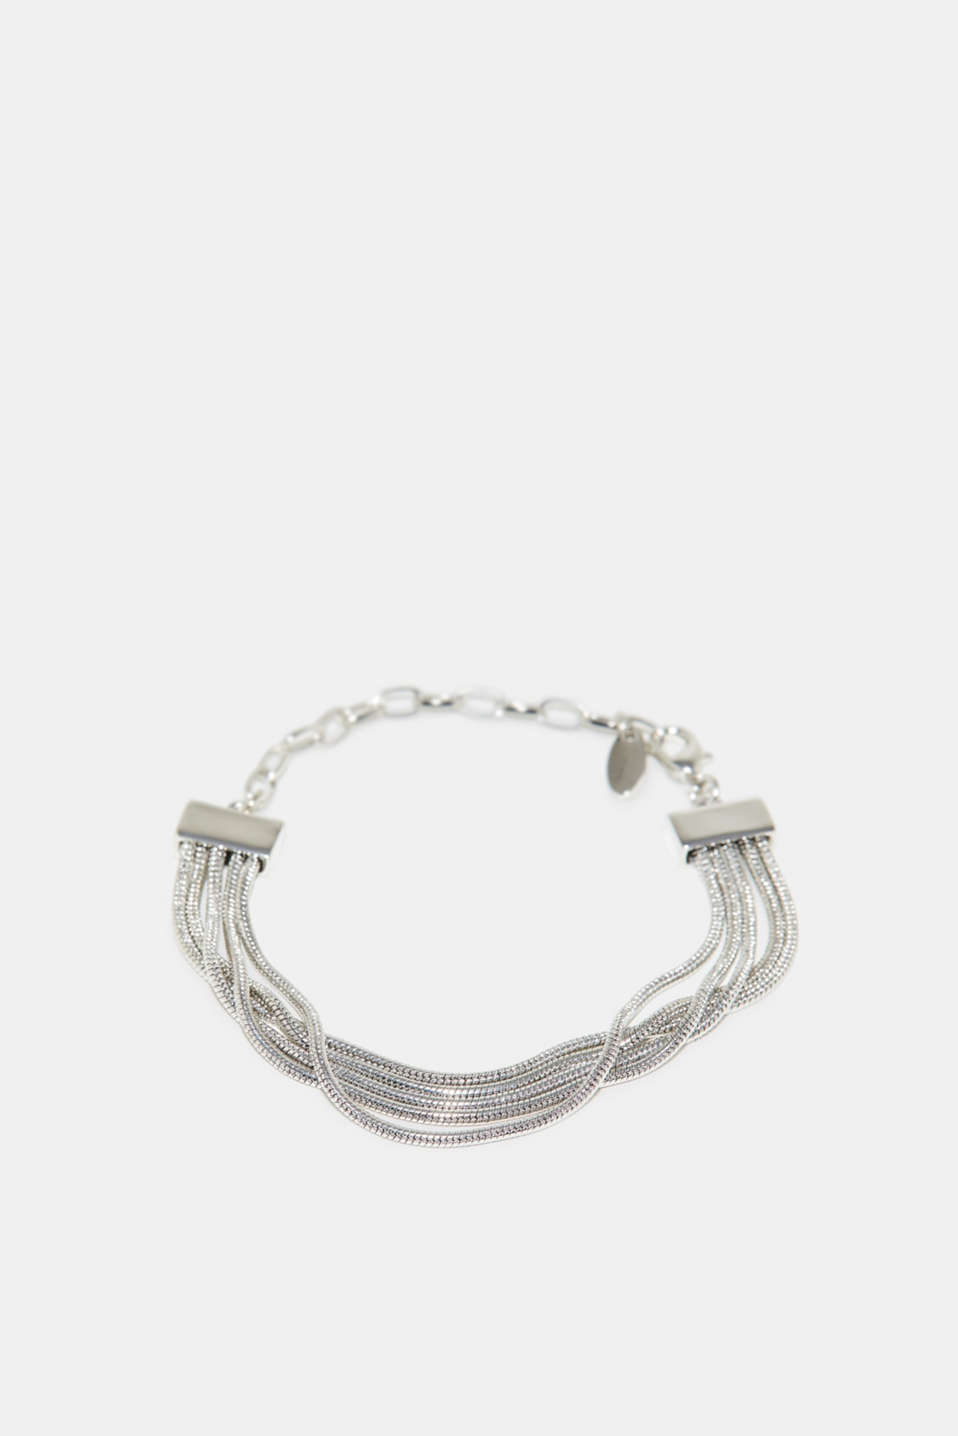 Esprit - Multi-strand bracelet made of metal